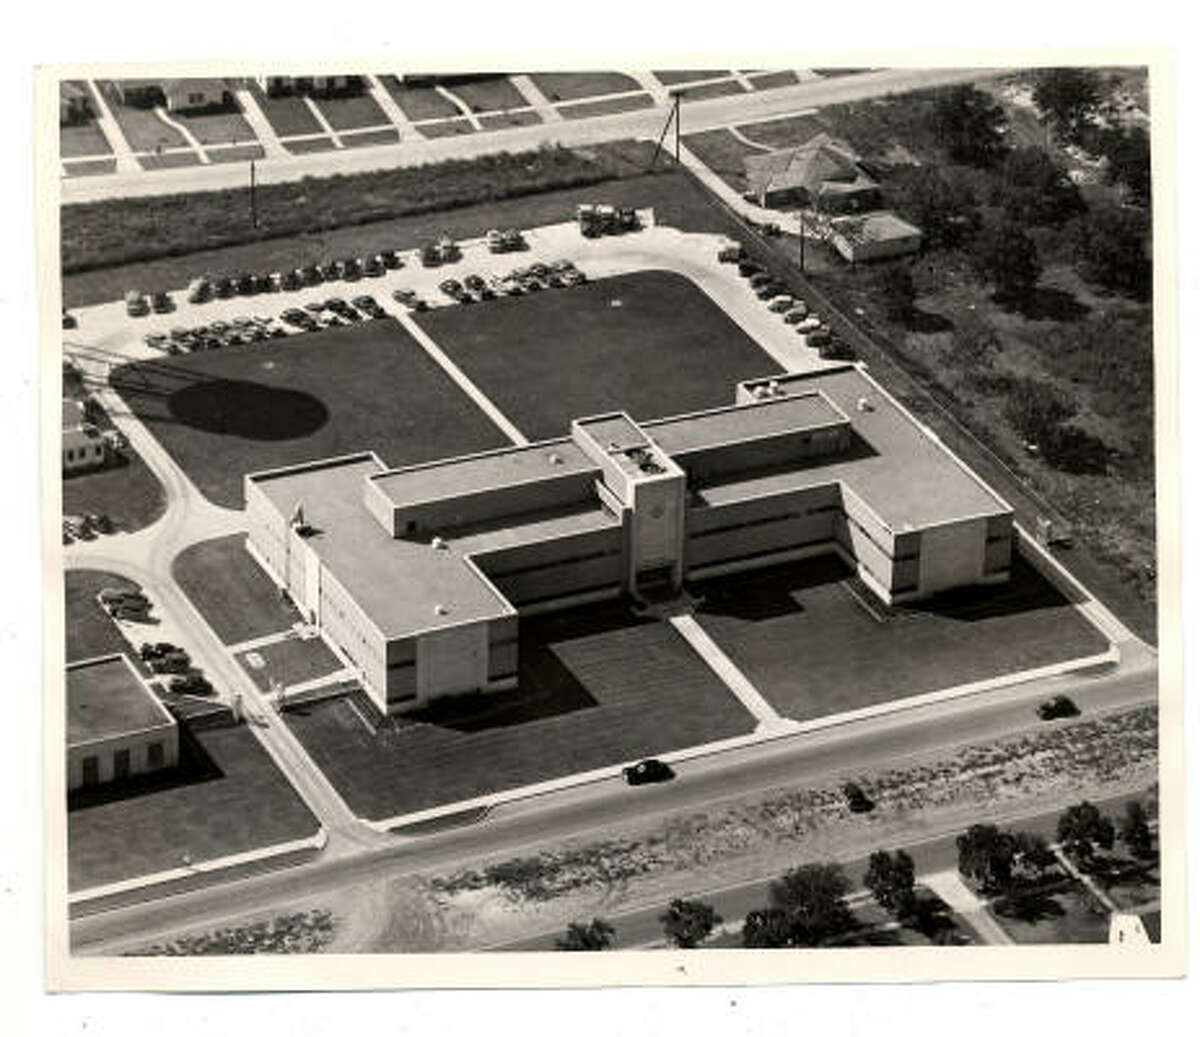 Shell's Bellaire Technology Center, photographed in 1949, opened in 1936.